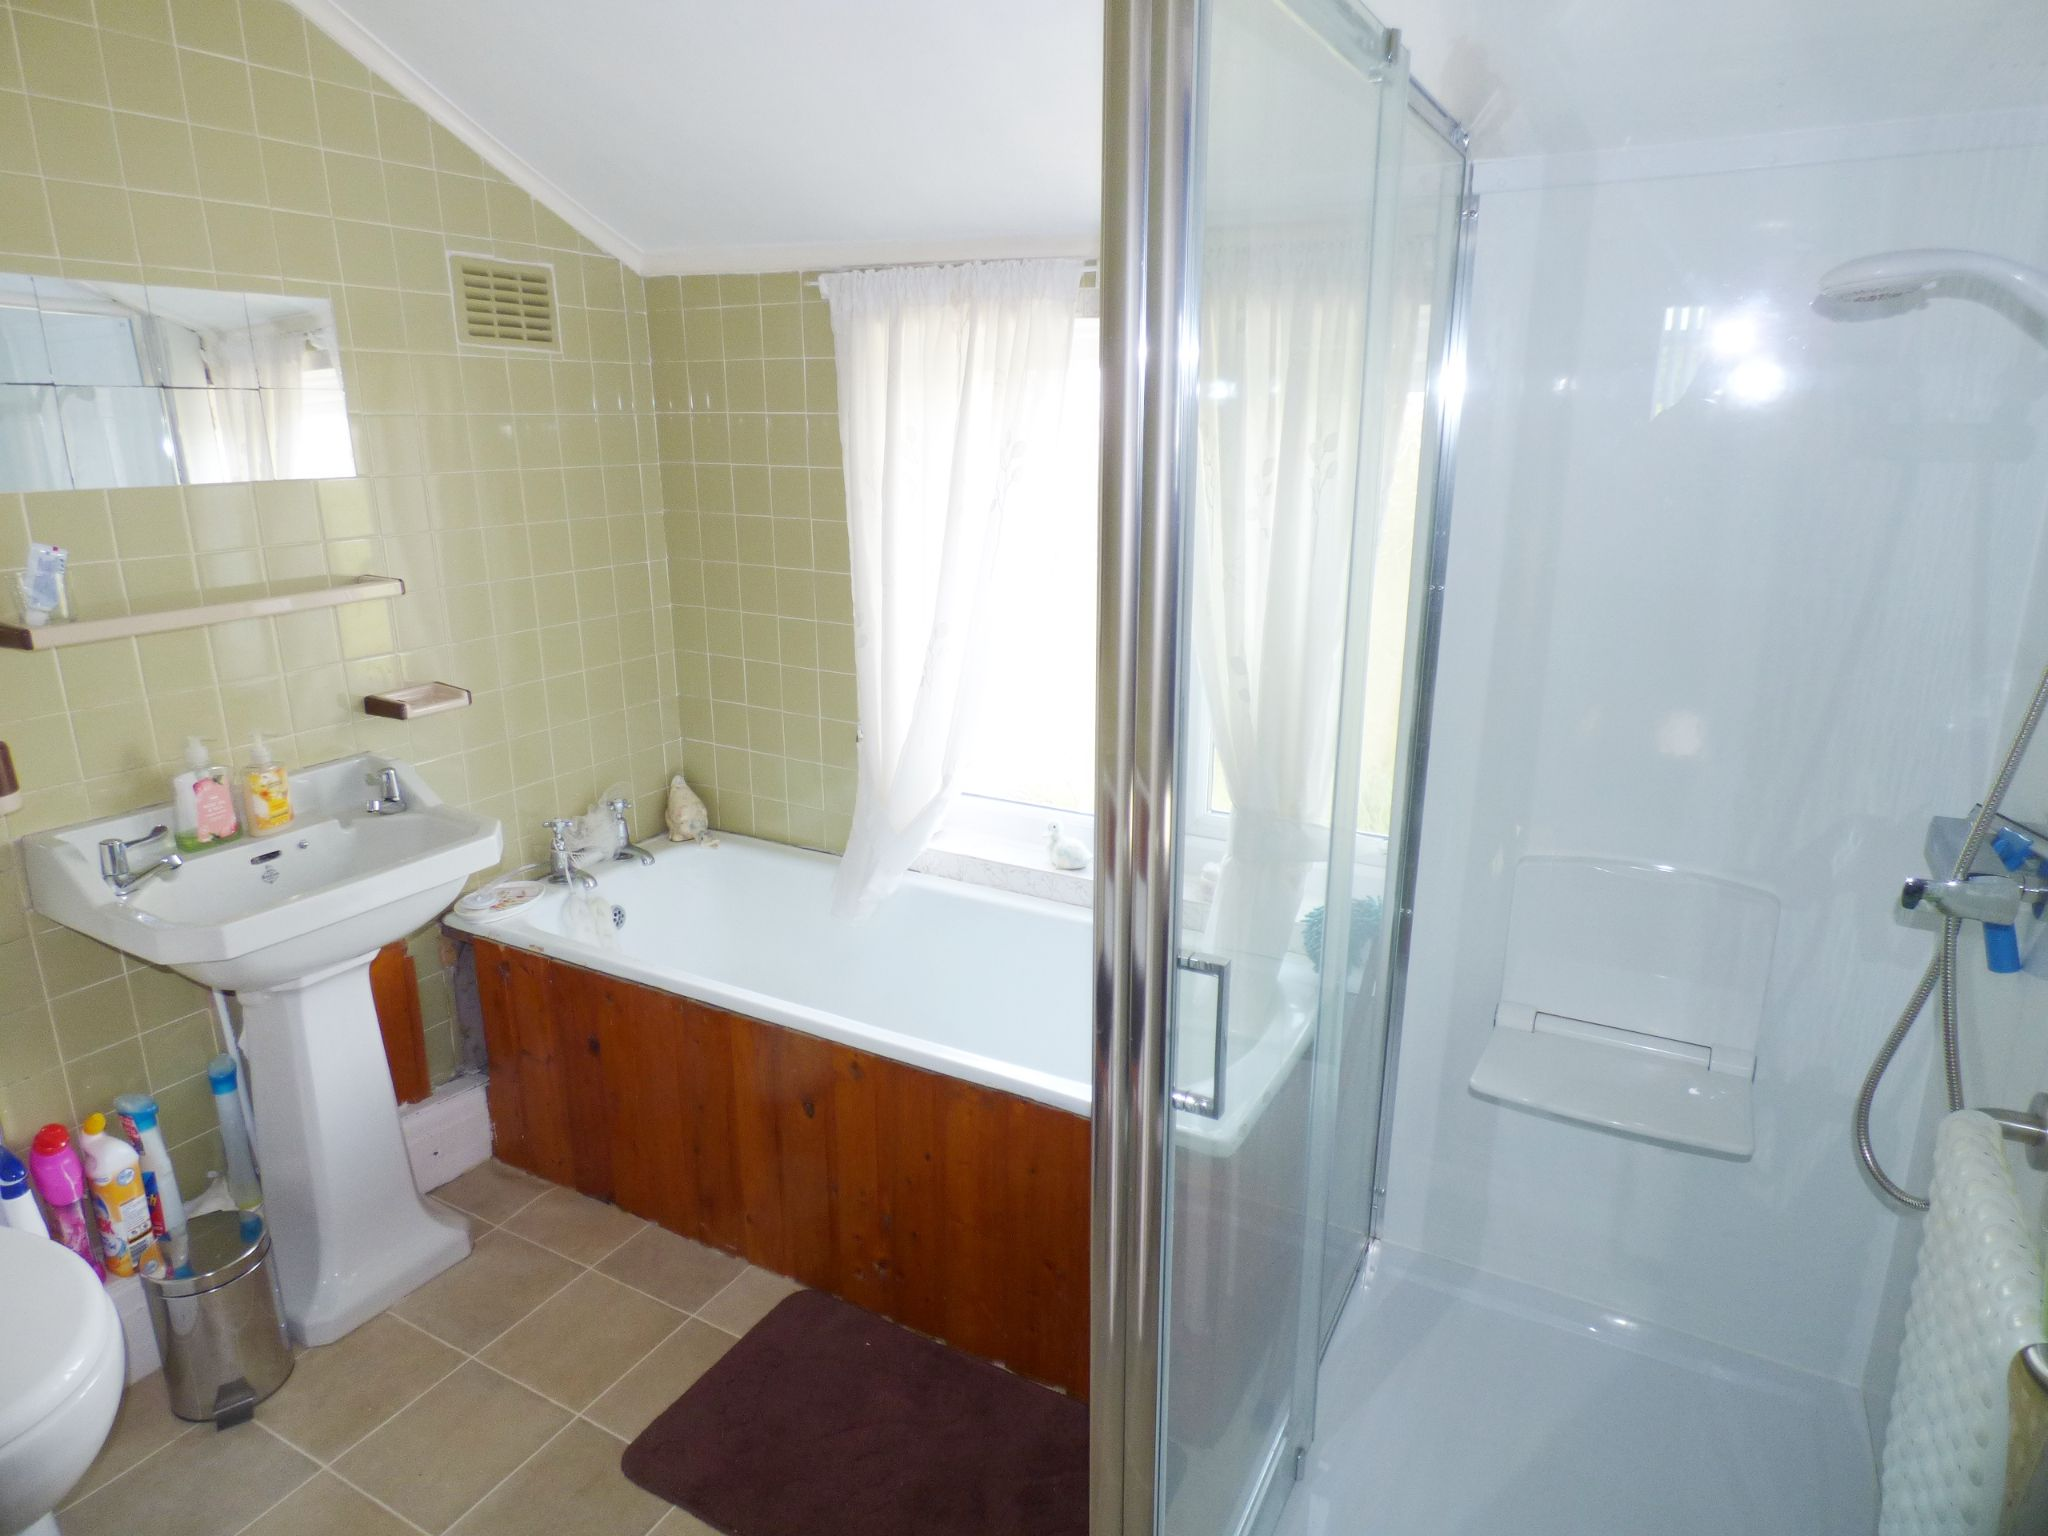 2 Bedroom Semi-detached House For Sale - Bathroom